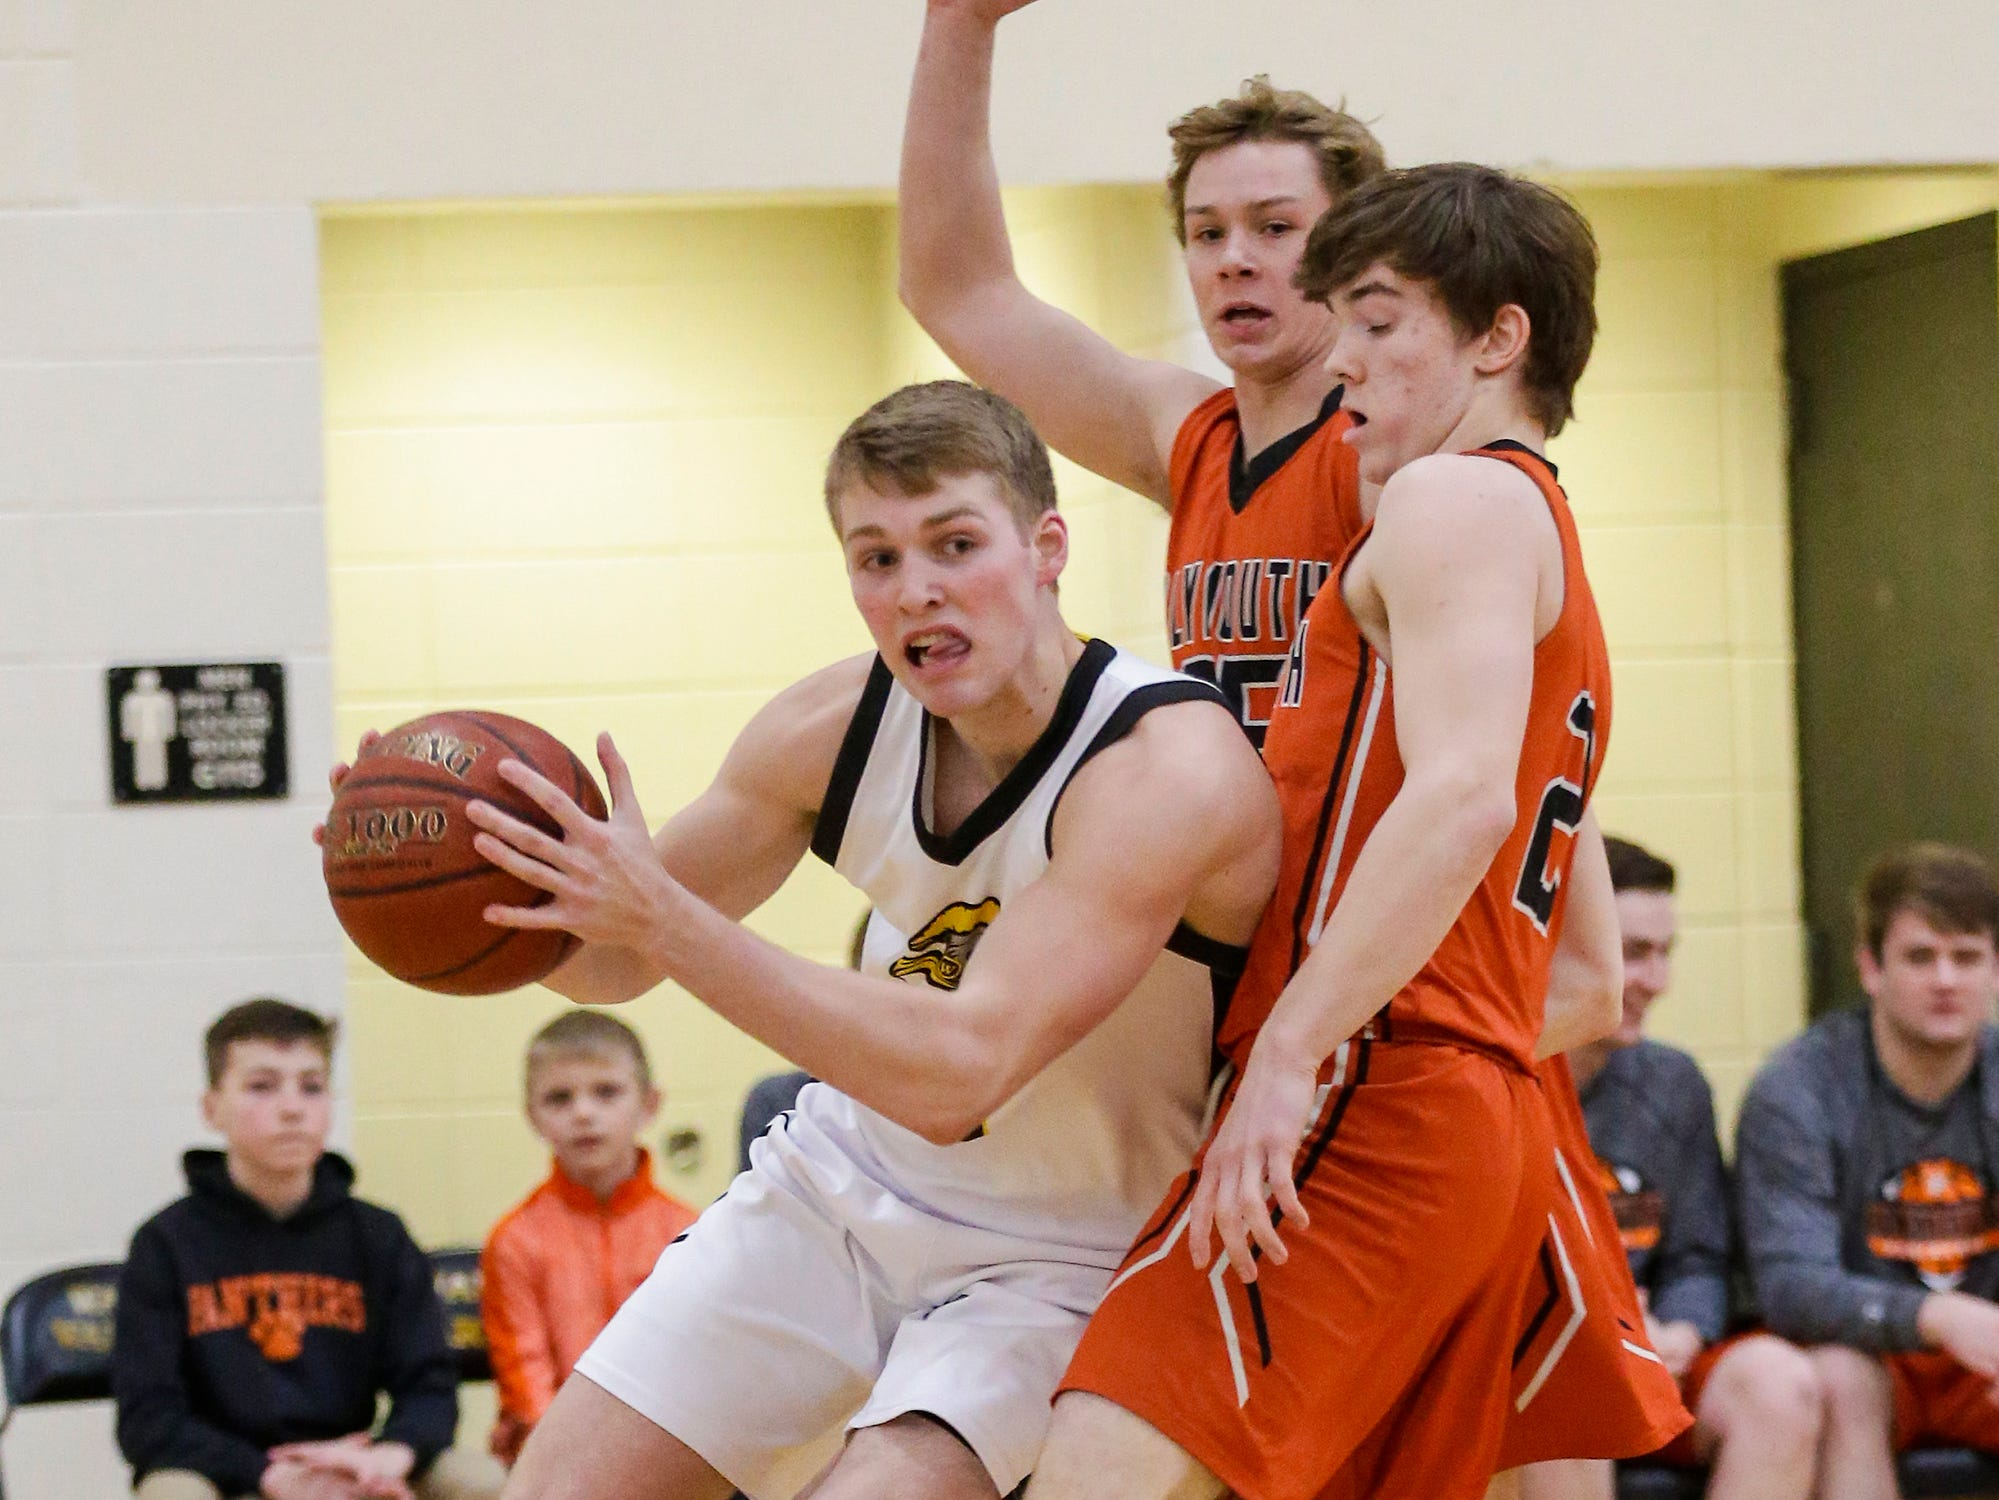 Waupun High School boys basketball's Marcus Domask (1) works his way past Plymouth High School's Aiden Reilly (25) and Cooper Gosse (2) during their game Friday, February 15, 2019 in Waupun. Doug Raflik/USA TODAY NETWORK-Wisconsin